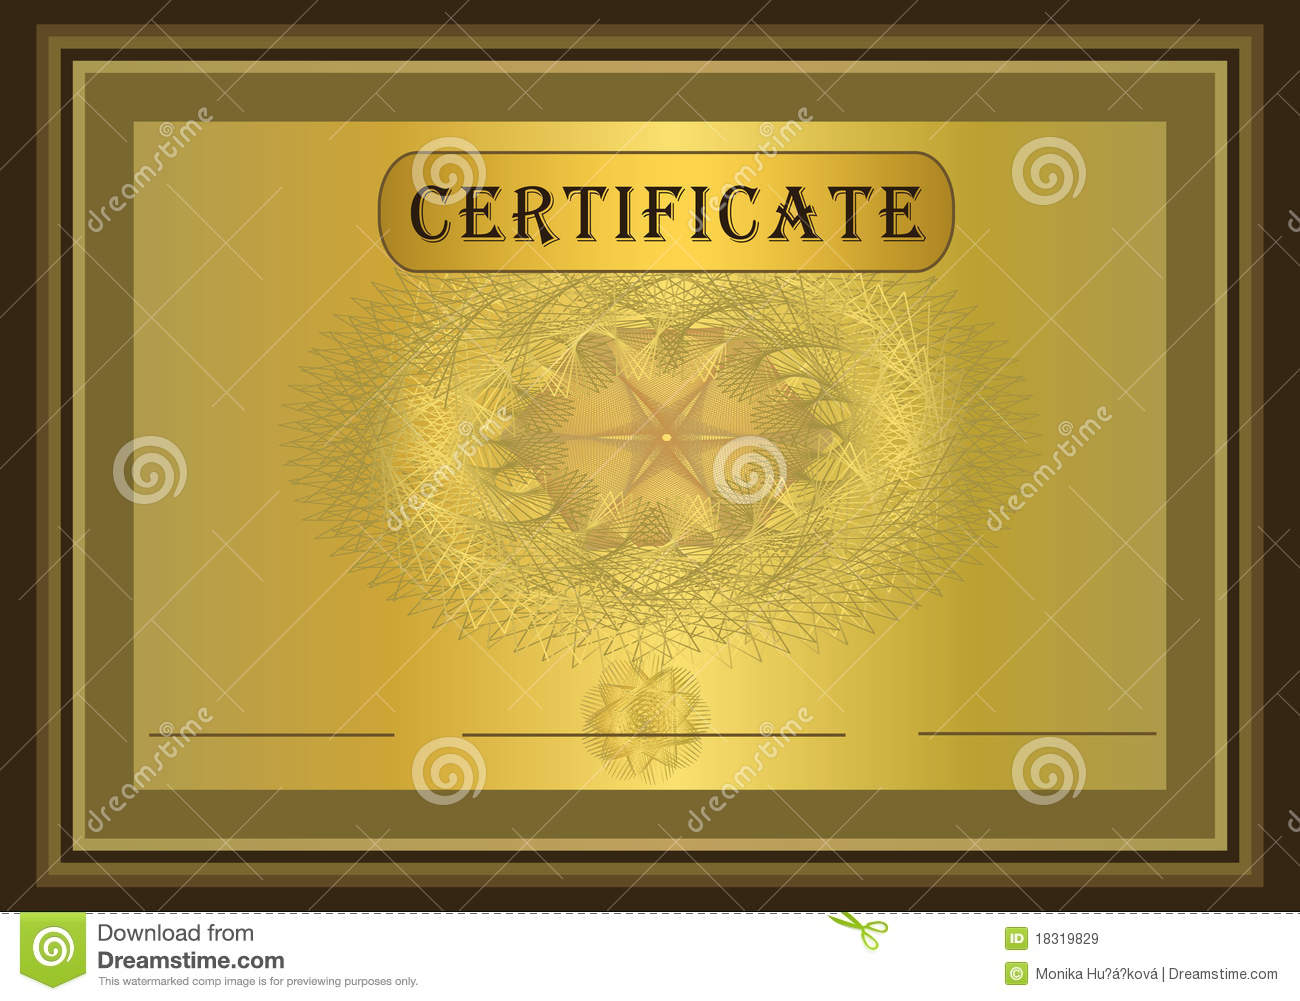 Certificate Gold Brown stock vector. Illustration of ...